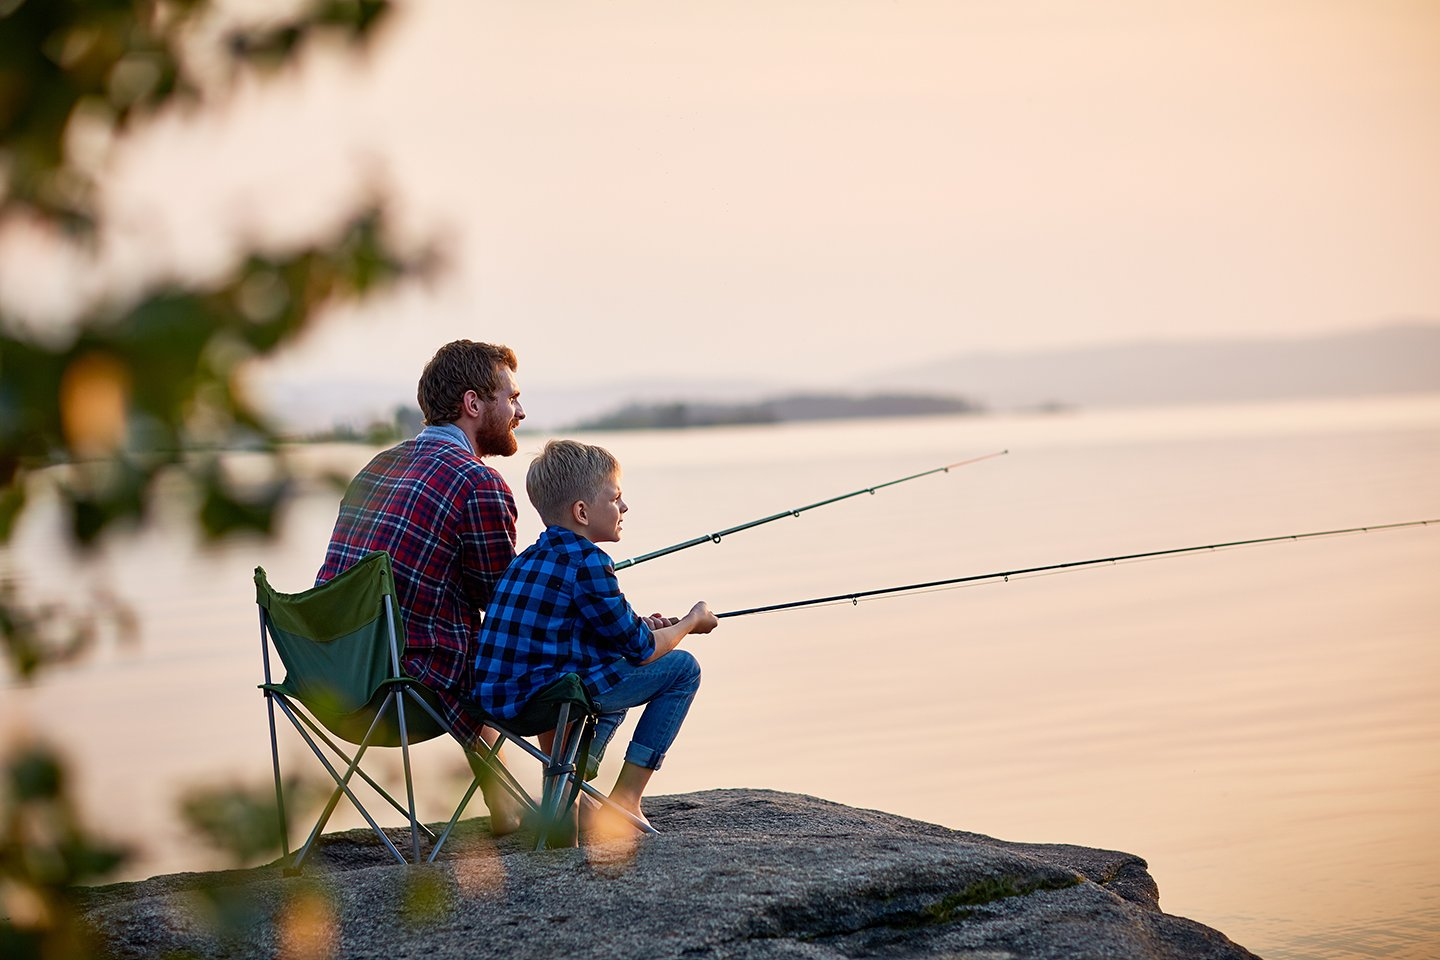 A father and son fishing together on the side of a lake